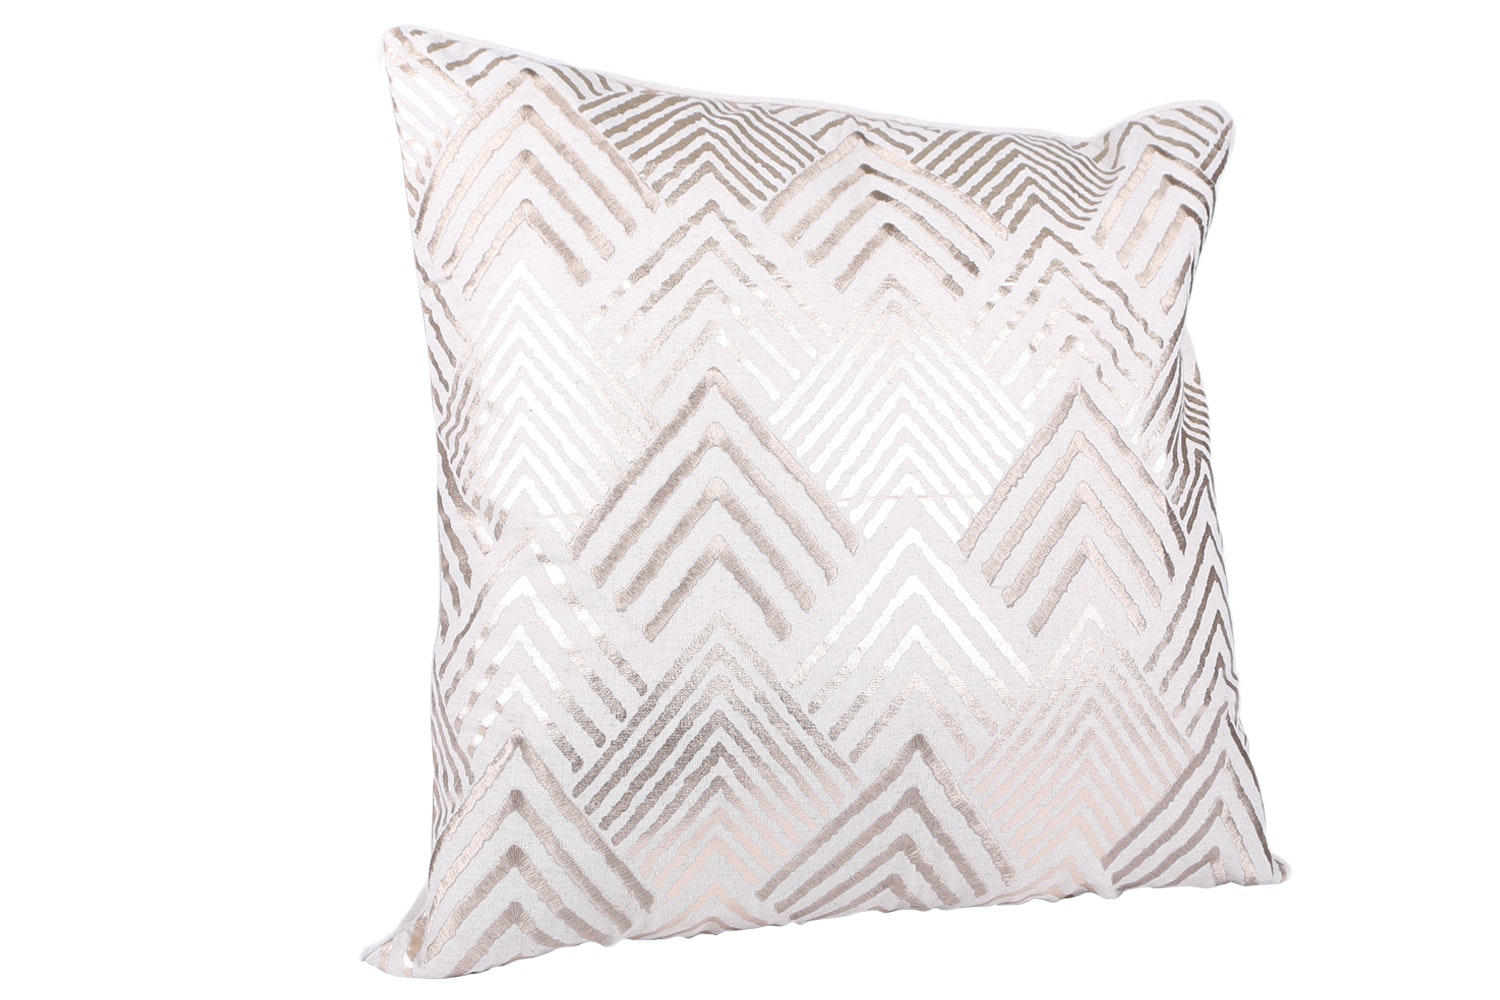 Geometric Foilprint Cushion